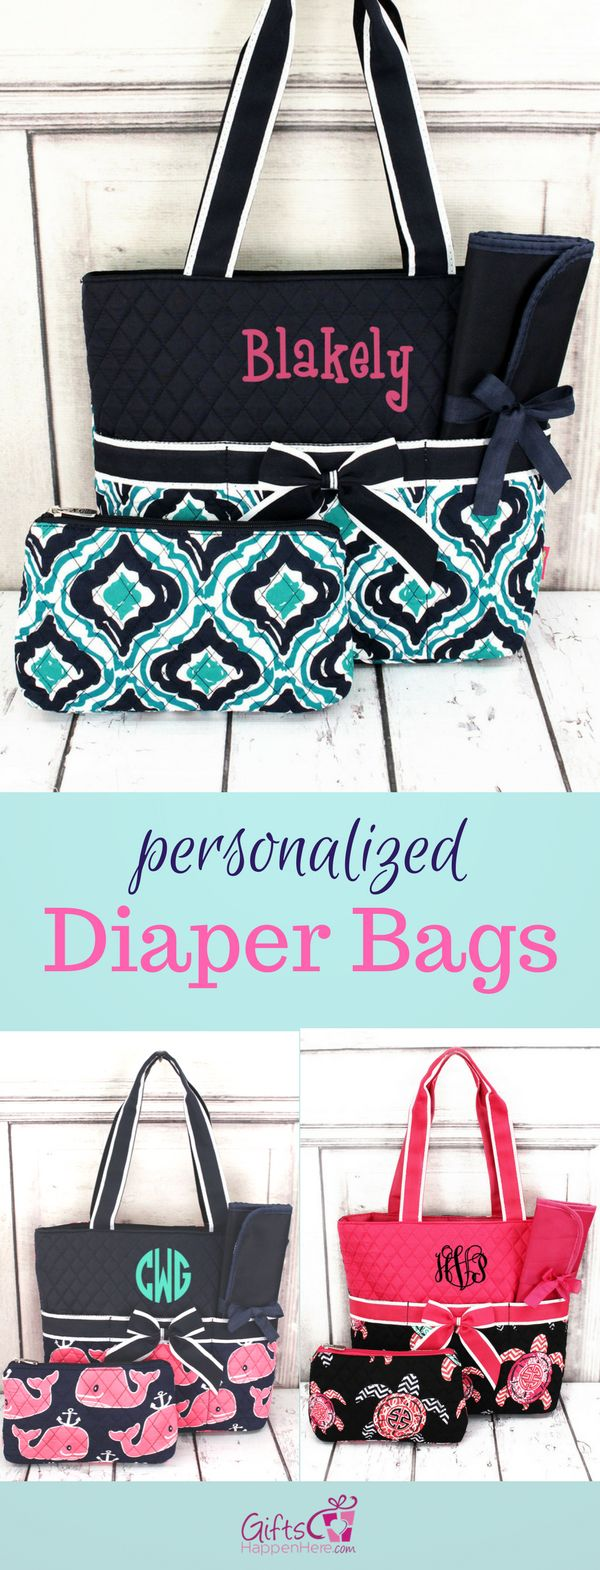 166 best best of gifts happen here images on pinterest personalized diaper bag quilted baby tote changing pad negle Image collections